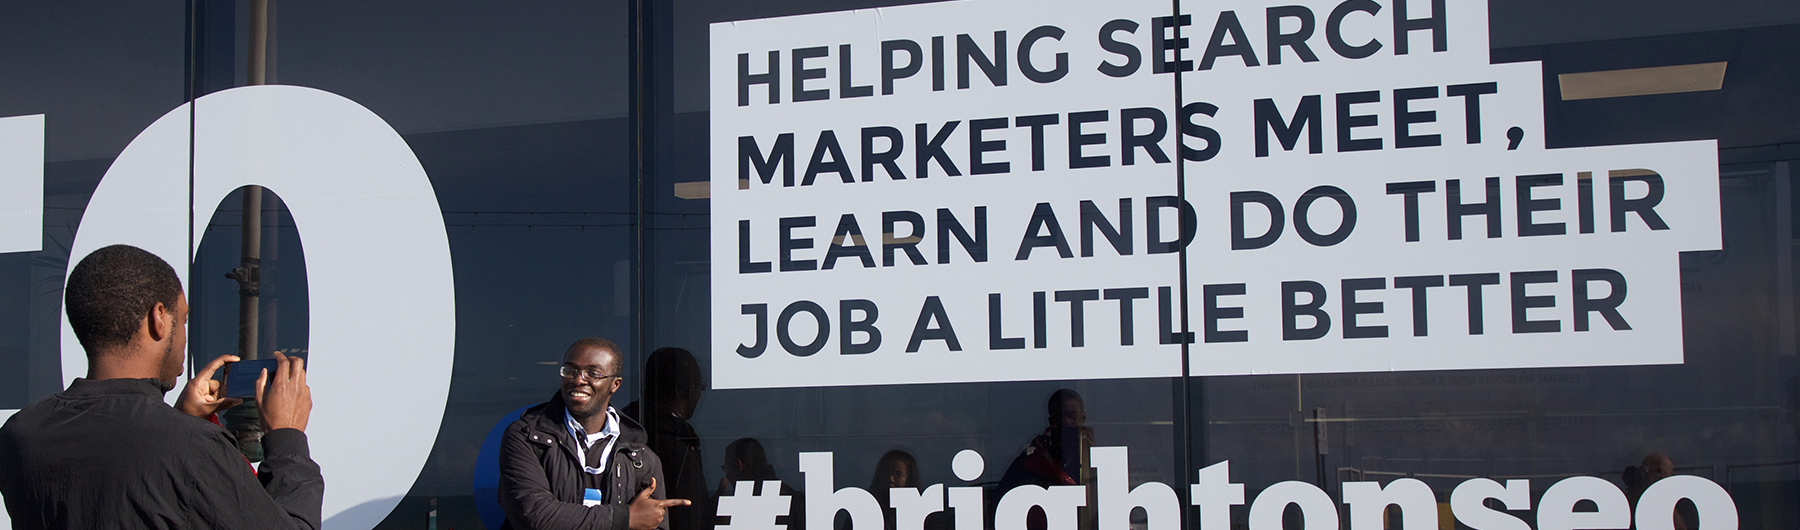 April 2018 BrightonSEO